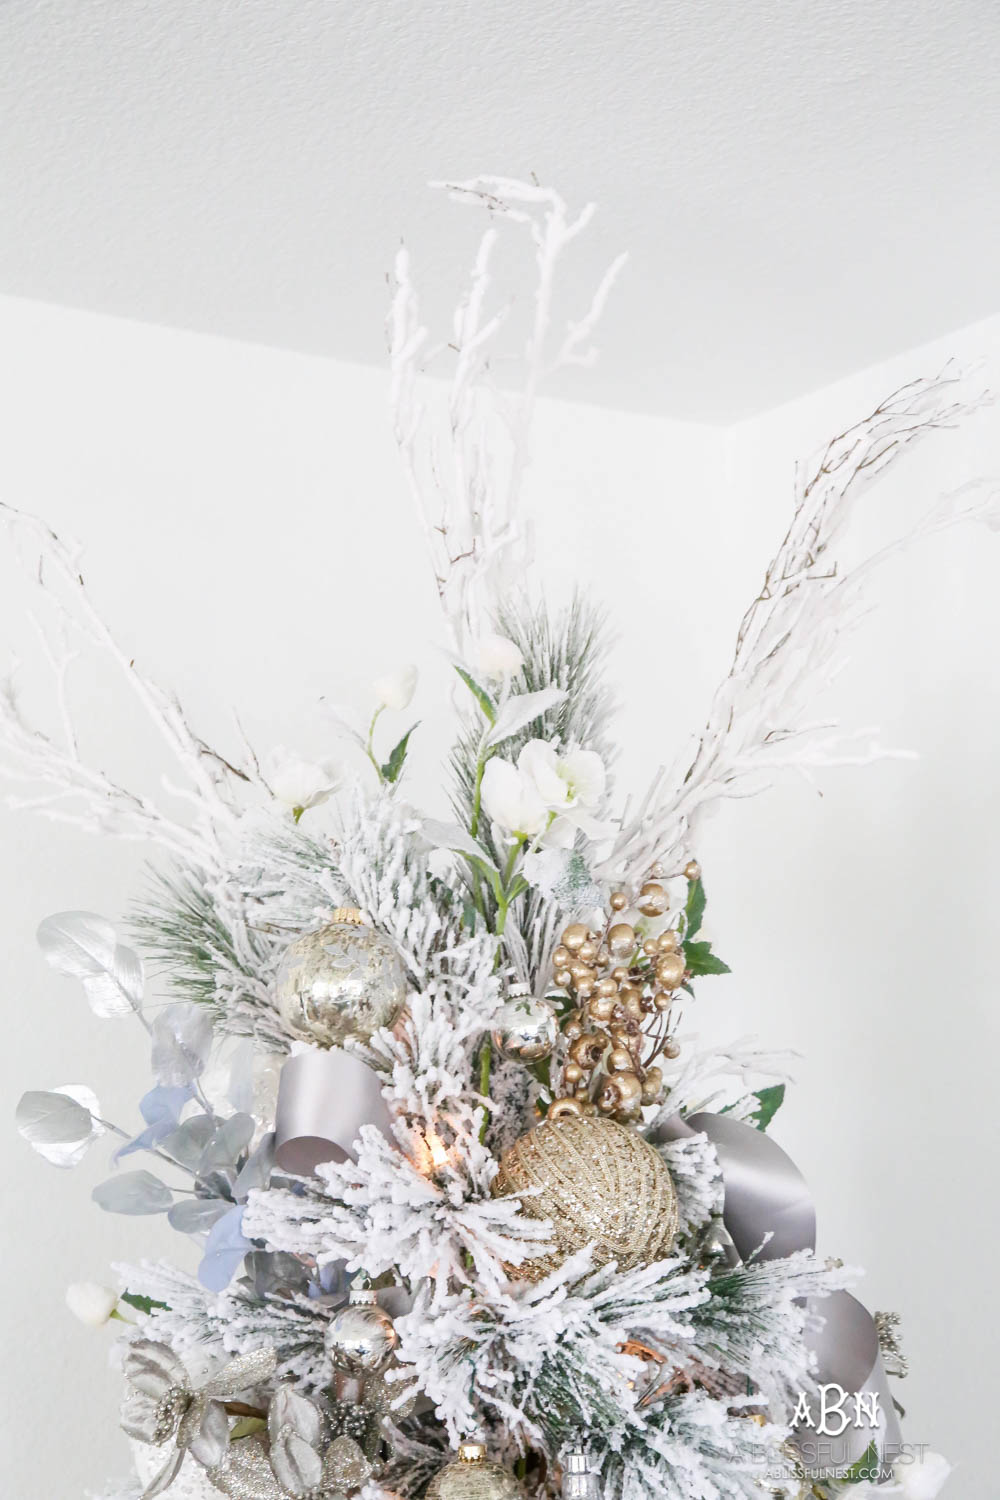 Silver and gold Christmas tree in an open concept floor plan with lots of blue home decor accents. Check out all the white, silver and gold Christmas decor in this holiday home tour on ABlissfulNest.com. #ABlissfulNest #Christmasdecor #Christmasdecorating #CoastalChristmasdecor #christmastree